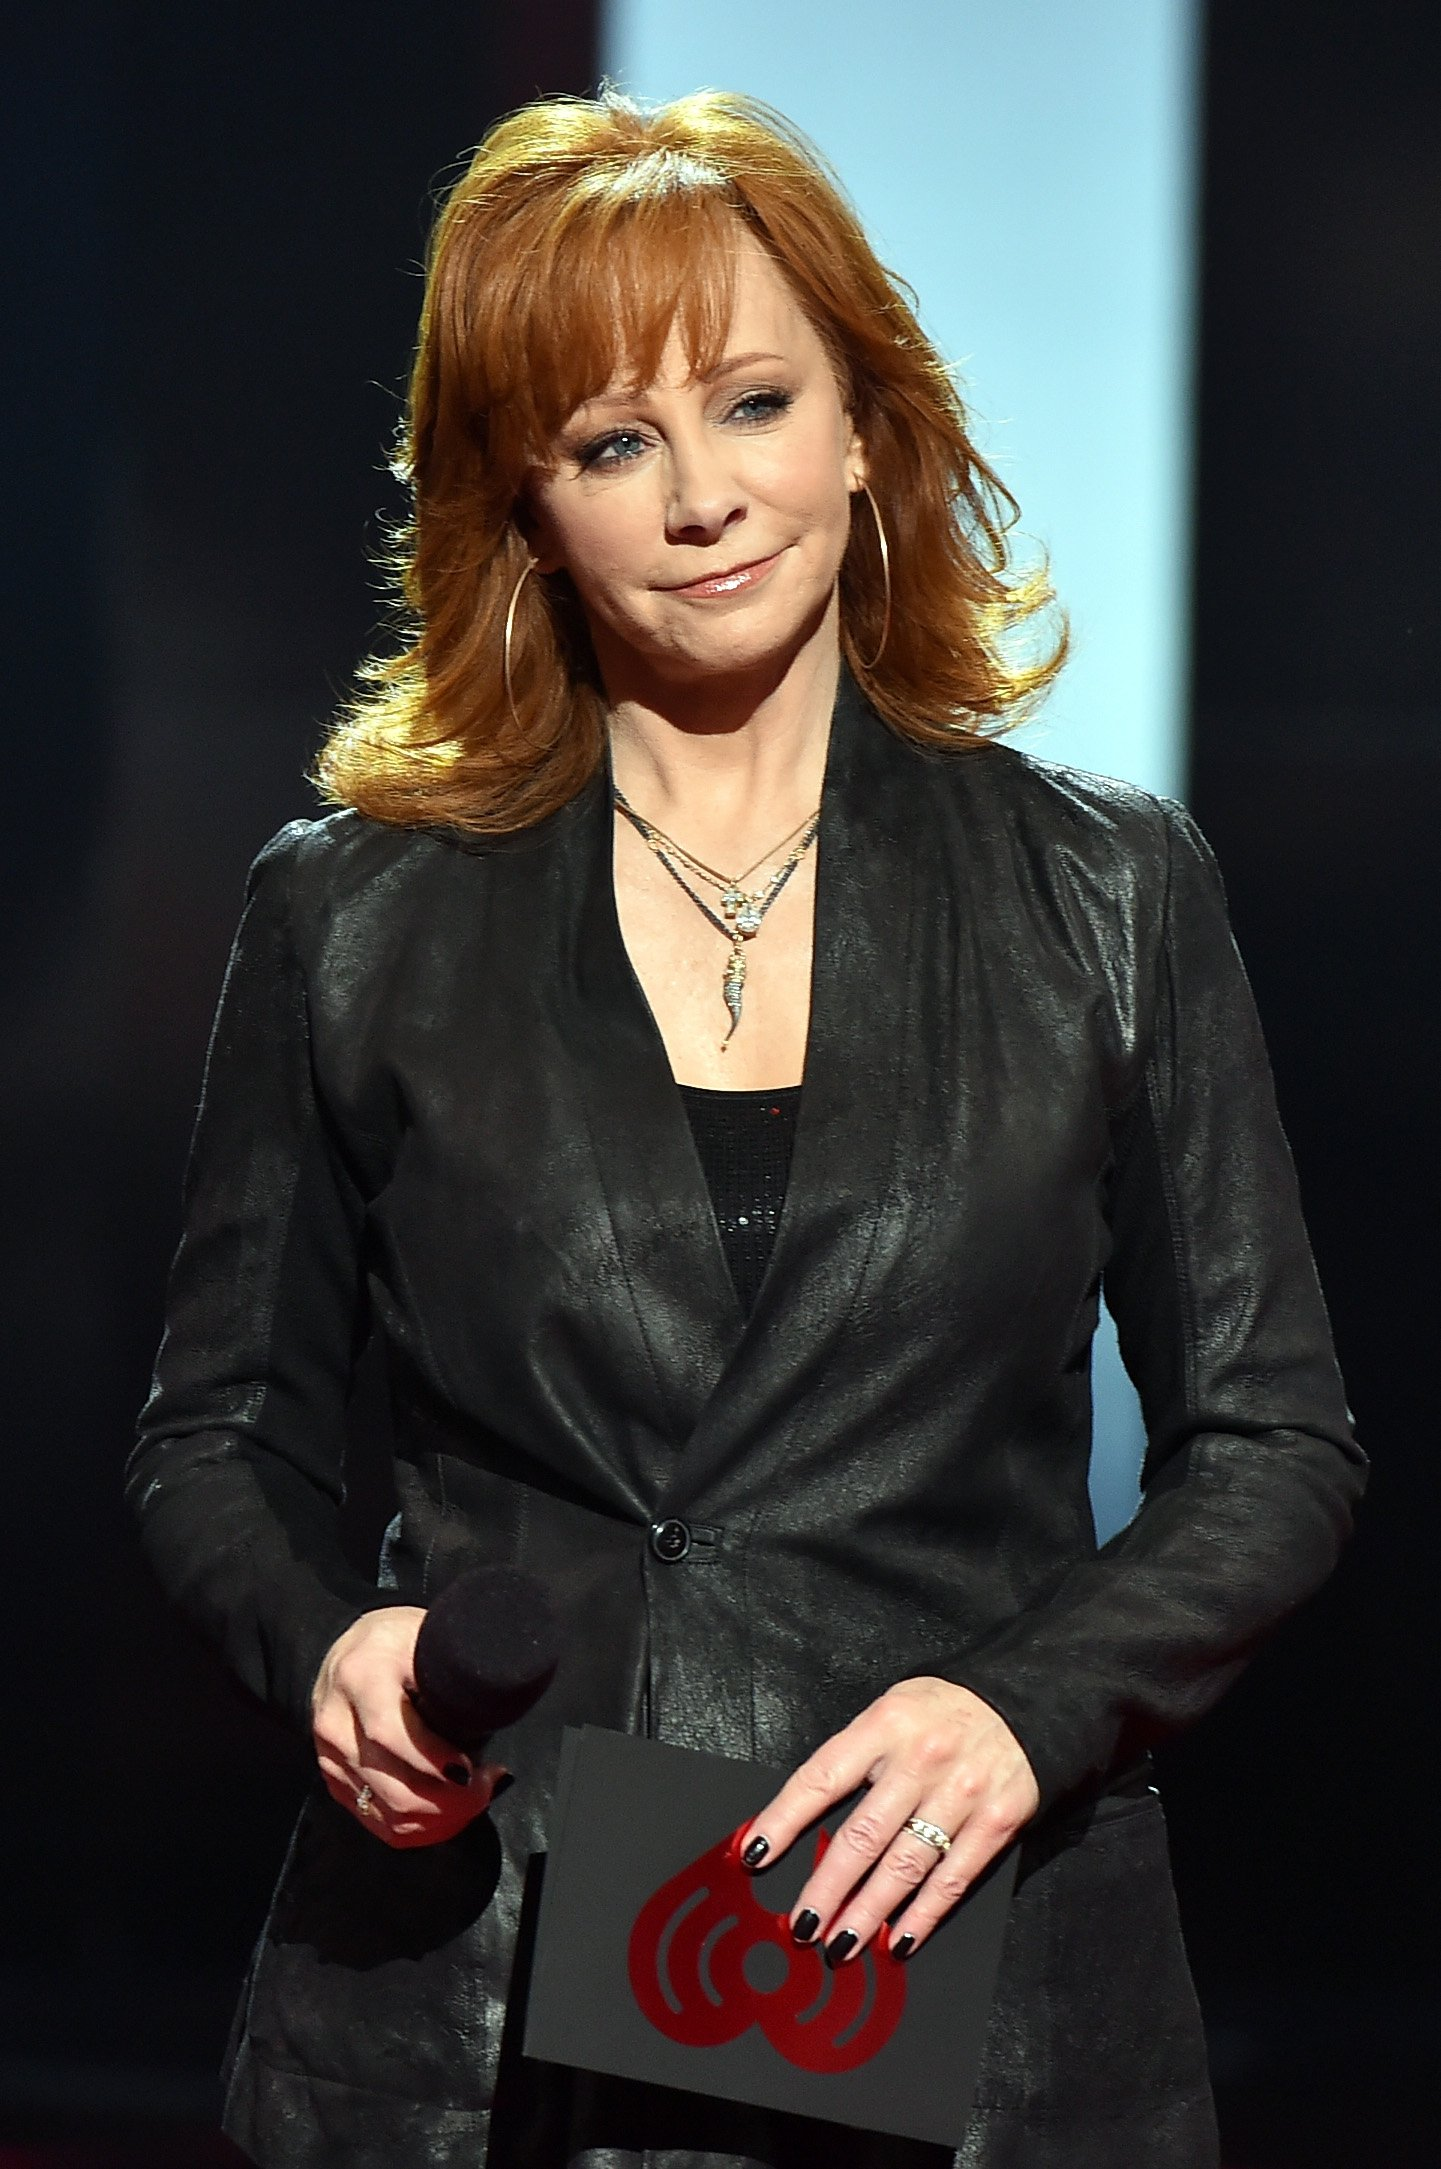 Reba McEntire speaks onstage during the 2015 iHeartRadio Music Awards March 29, 2015 | Photo: Getty Images